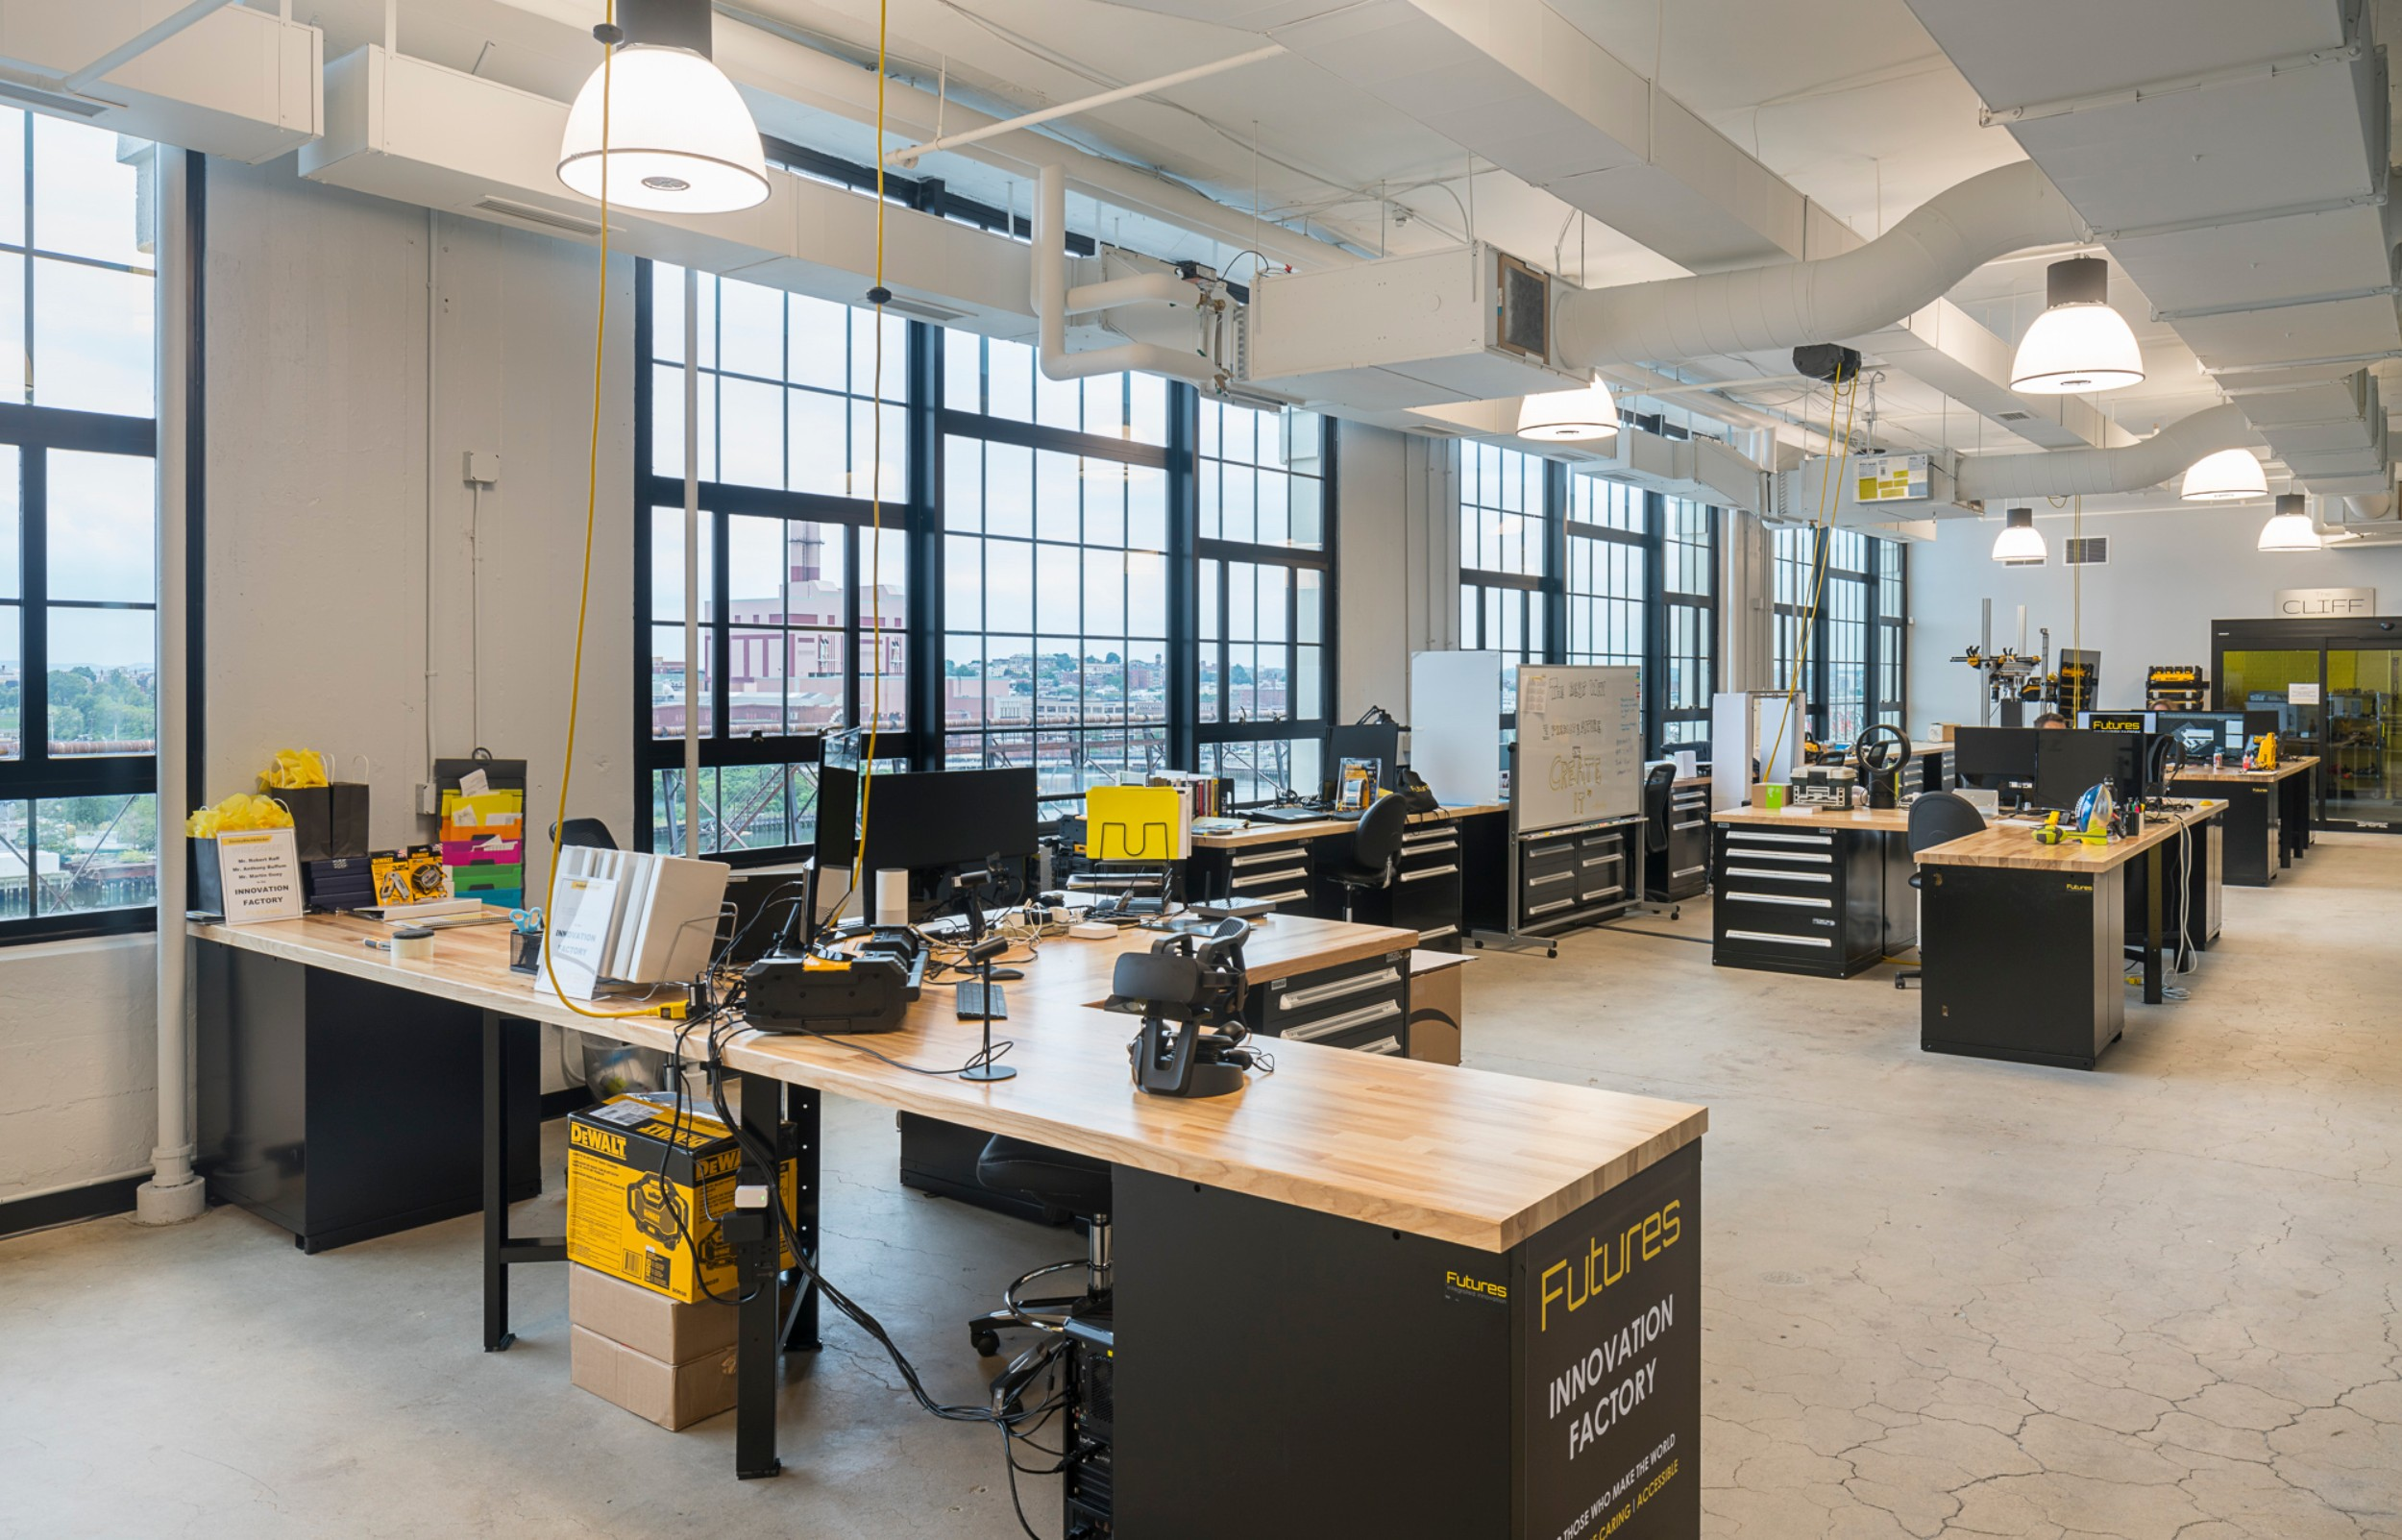 Stanley_Black_Decker_Corderman_Construction_Open_Area_Work_Stations_Boston_Seaport.jpg